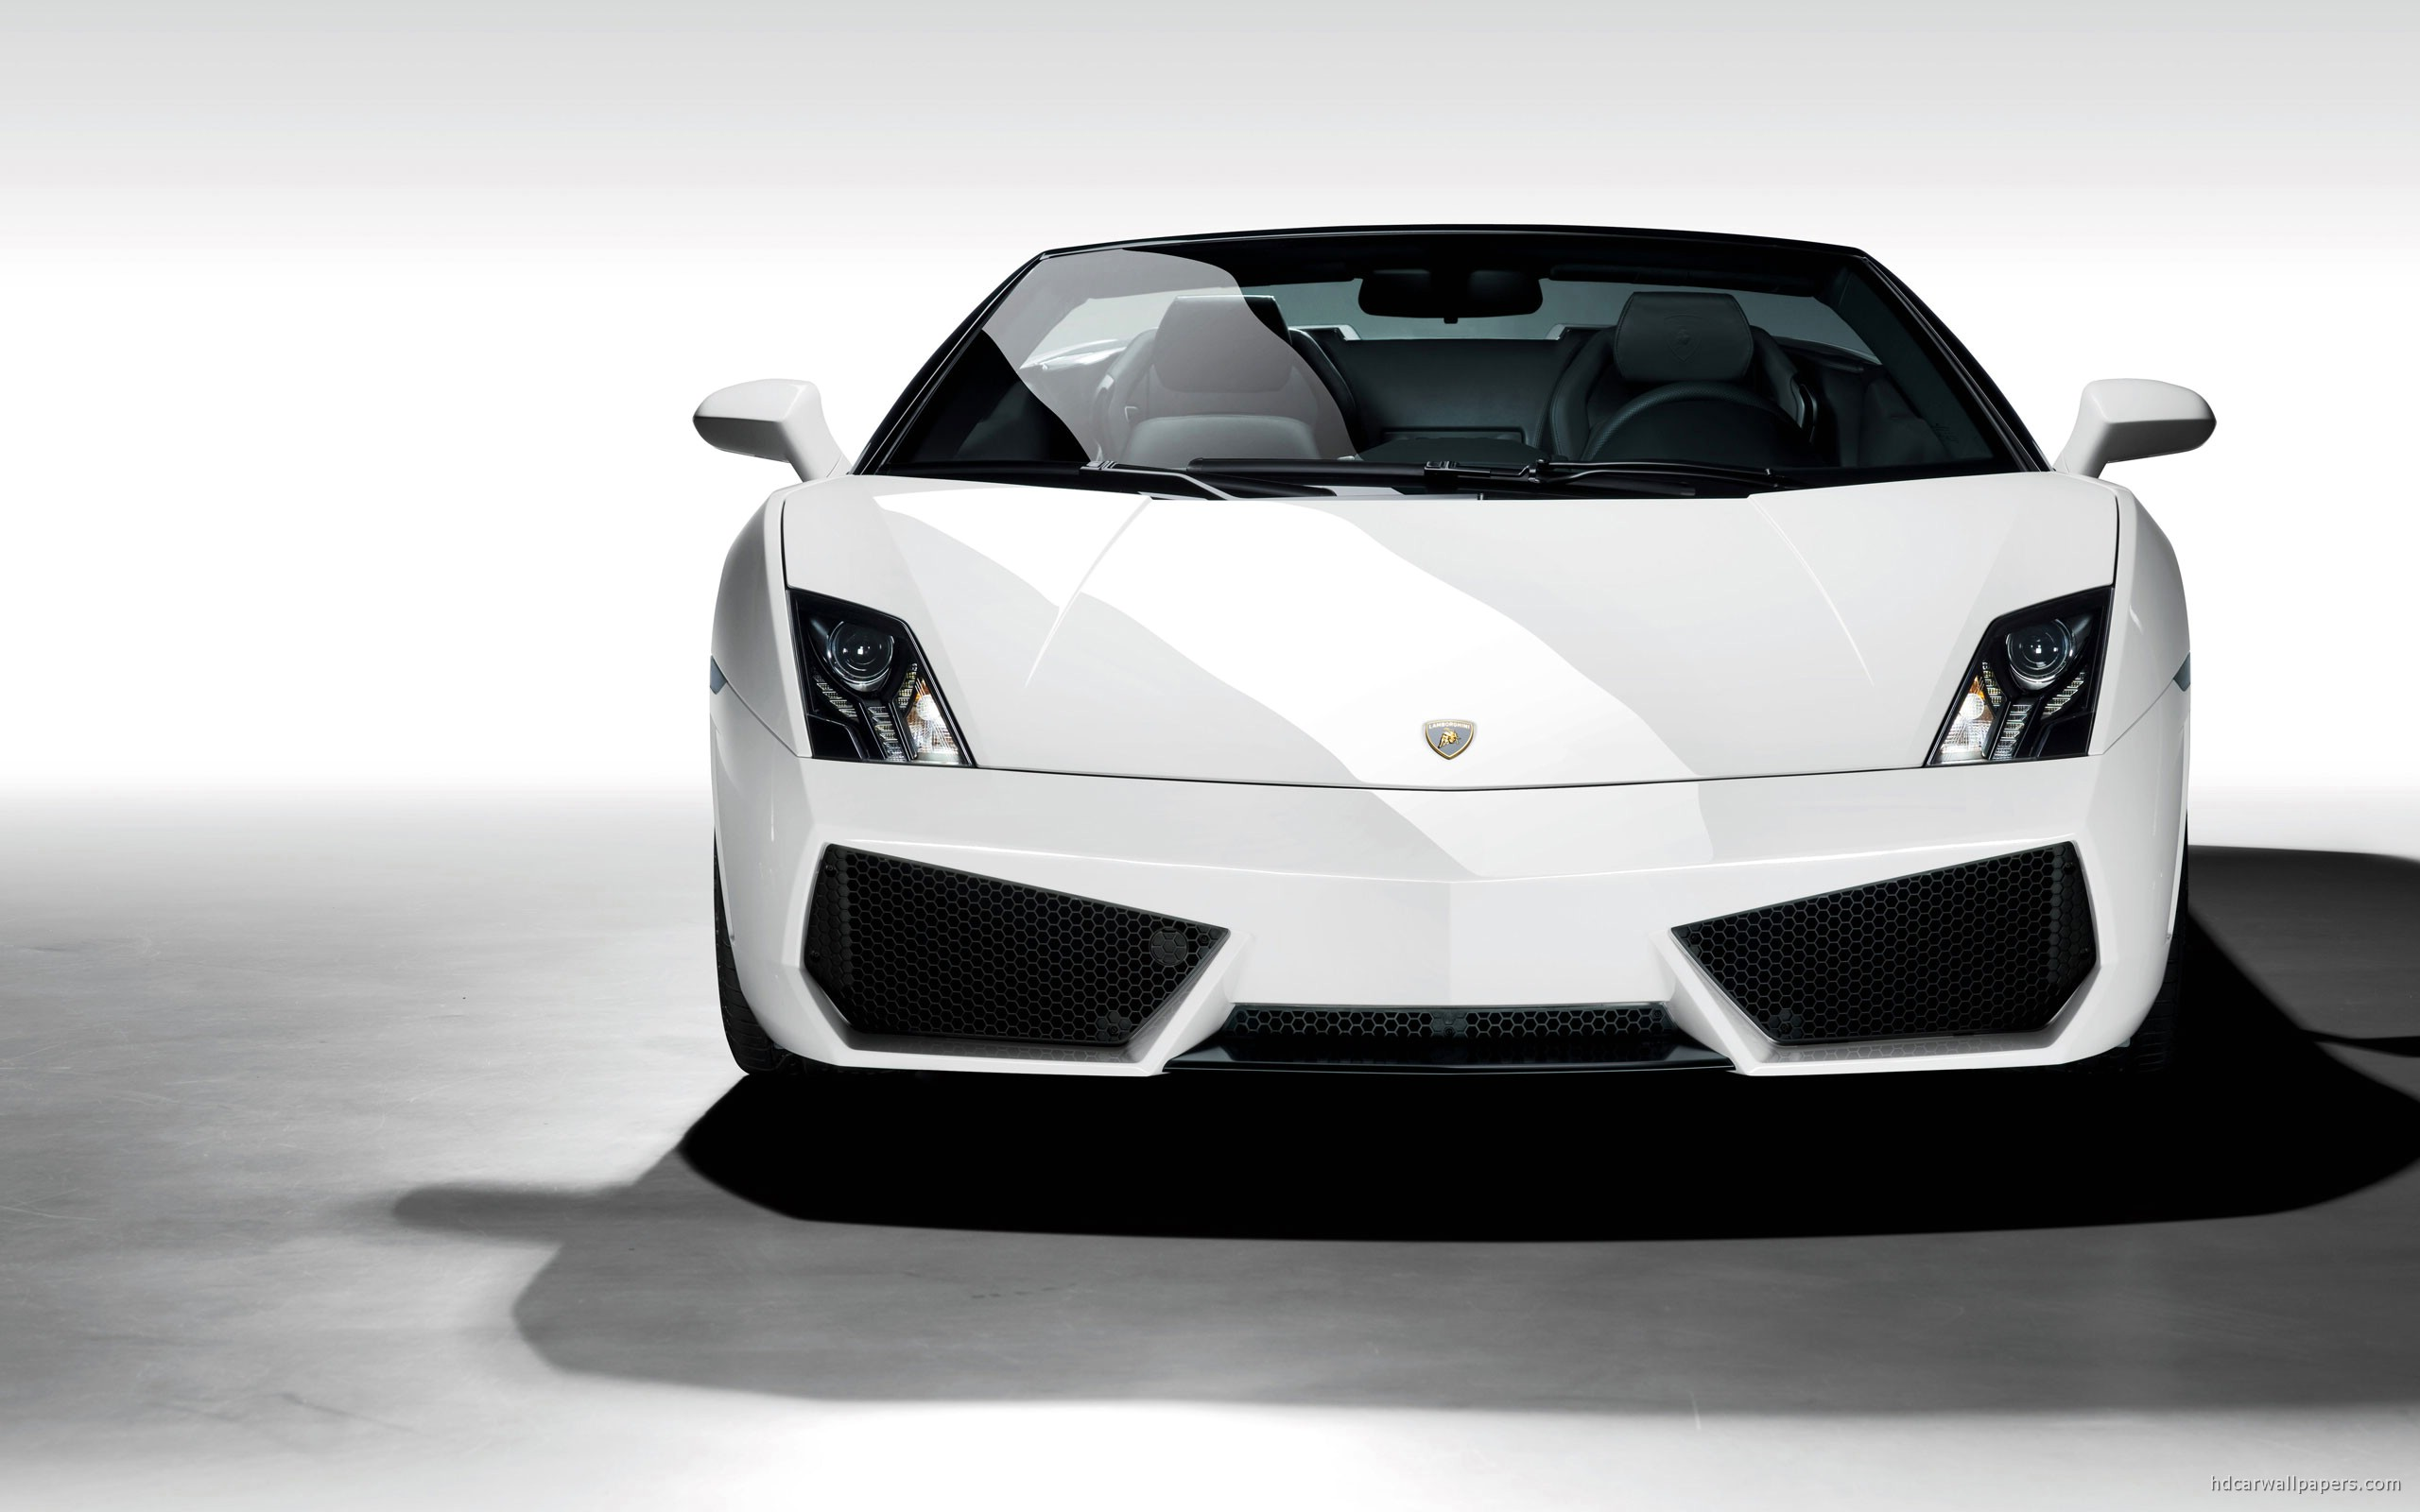 Tags Widescreen Spyder Lamborghini Gallardo